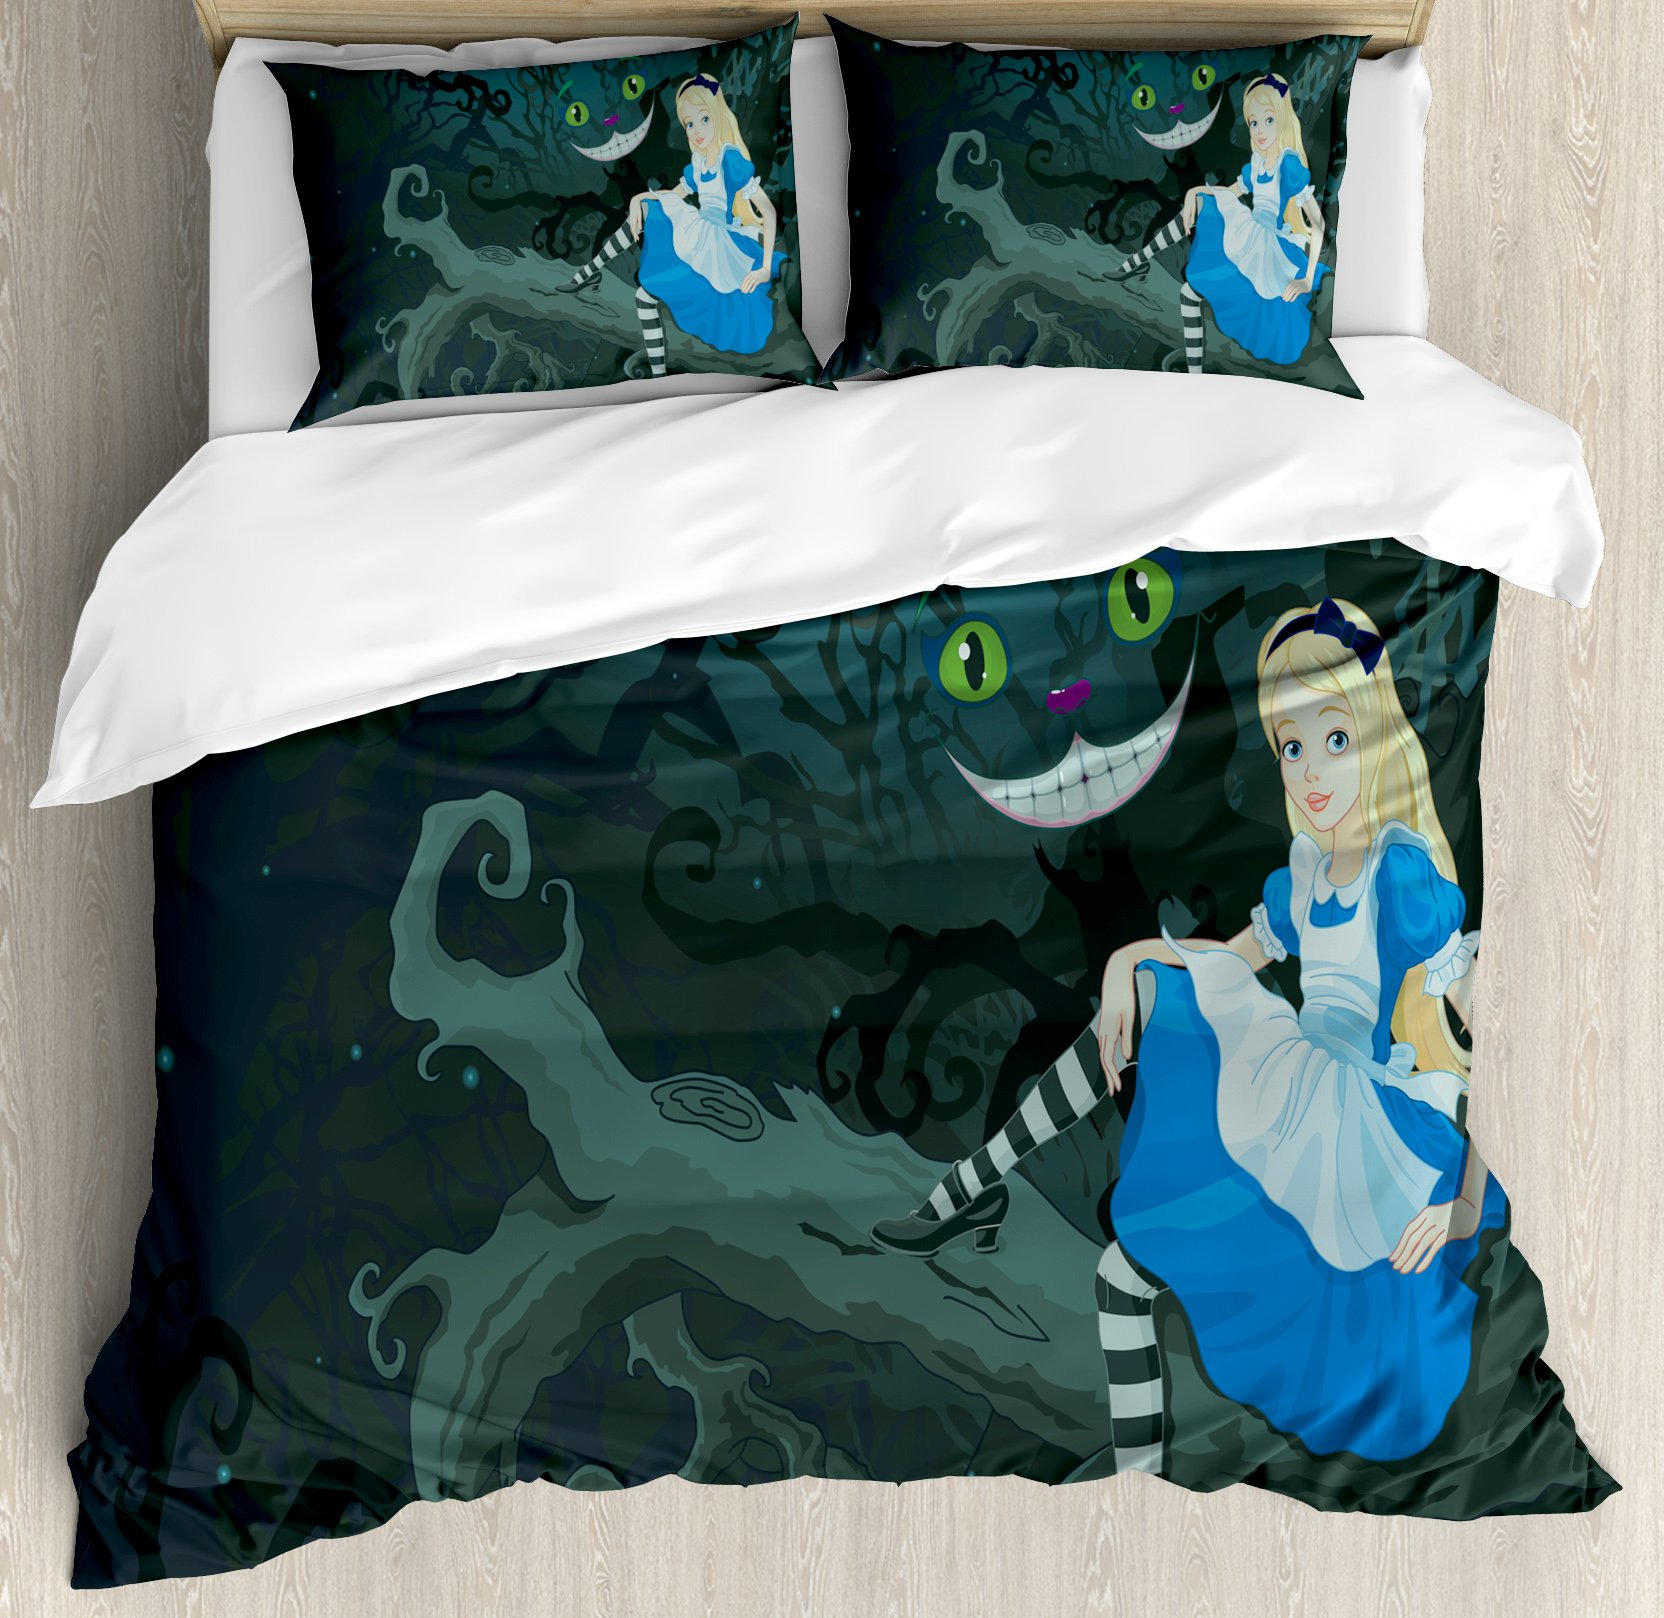 Alice in Wonderland Queen Size Duvet Cover Set by Ambesonne, Alice Sitting on Branch with Chescire Cat in Darkness Striped Cartoon Love, Decorative 3 Piece Bedding Set with 2 Pillow Shams, Multi